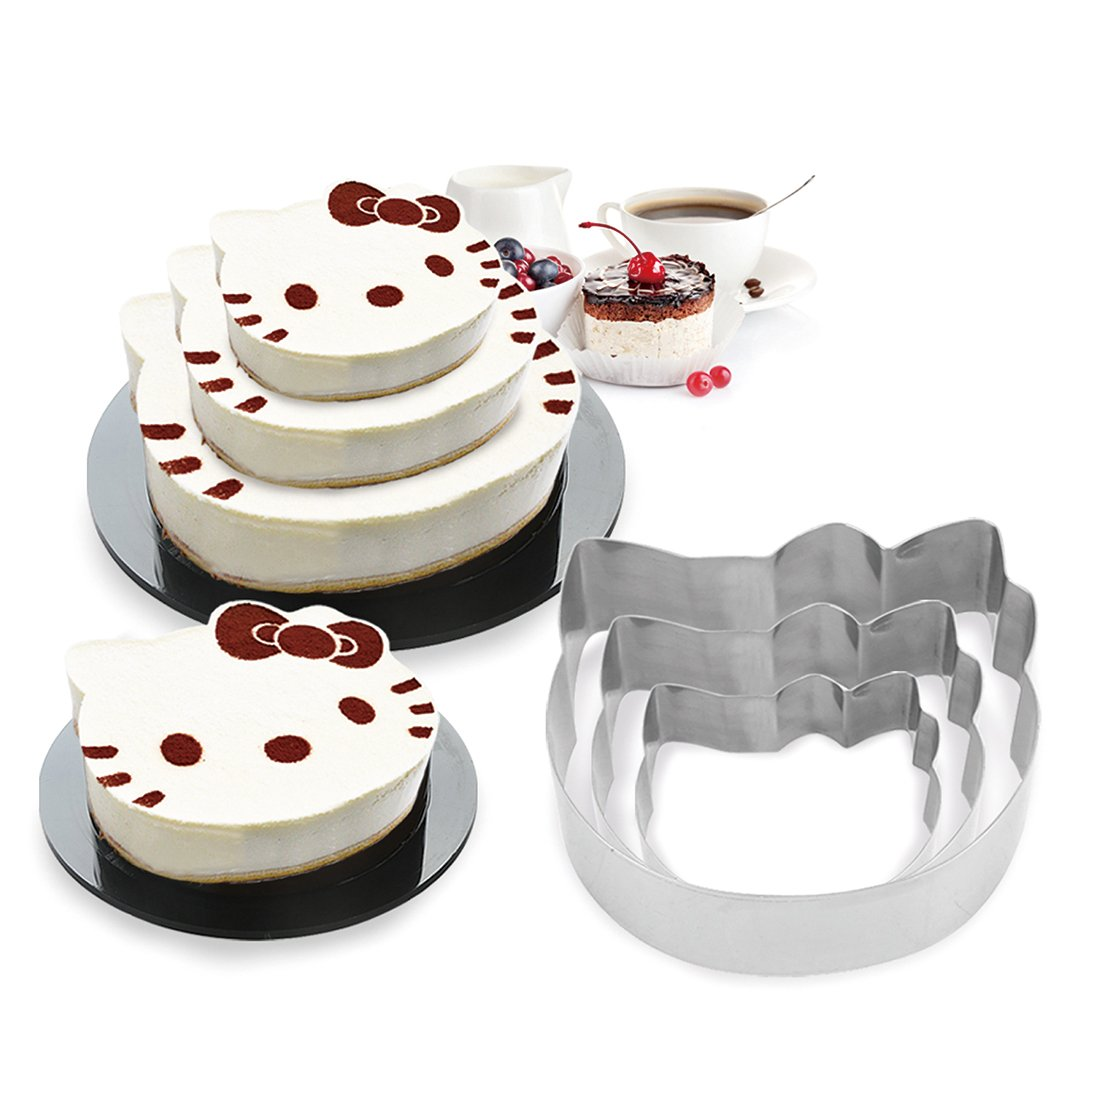 3 Tier Cat Multilayer Anniversary Birthday Cake Baking Pans,Stainless Steel 3 Sizes Rings Cat Molding Mousse Cake Rings(Cat-shapes,Set of 3)